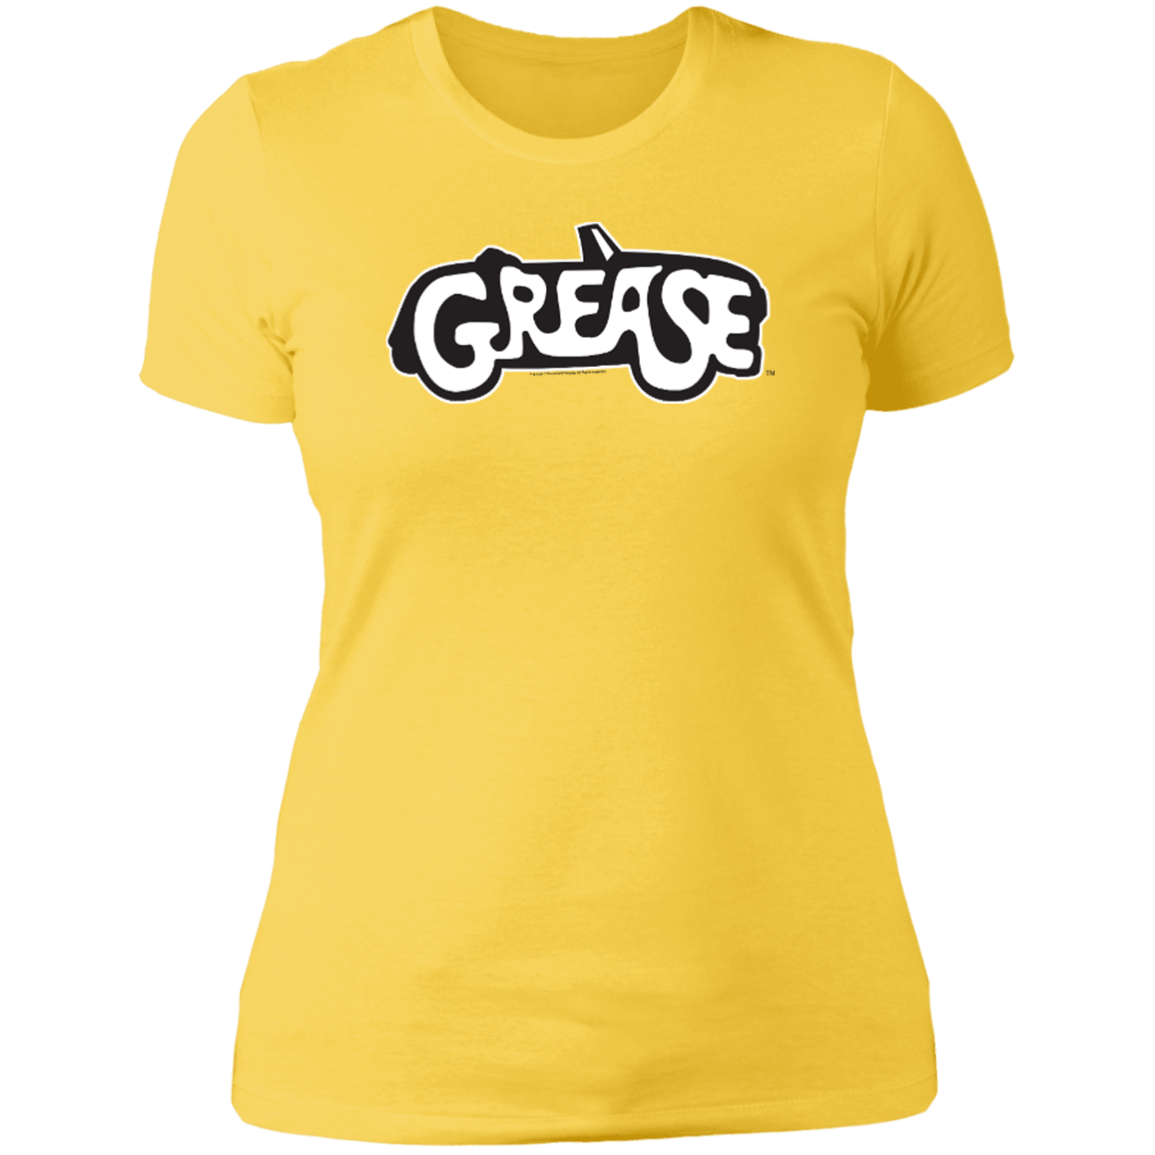 c8c68b9ab9316 Grease Grease - Next Level Women s Boyfriend Tee - Paramount Pictures  Official Apparel Shop.